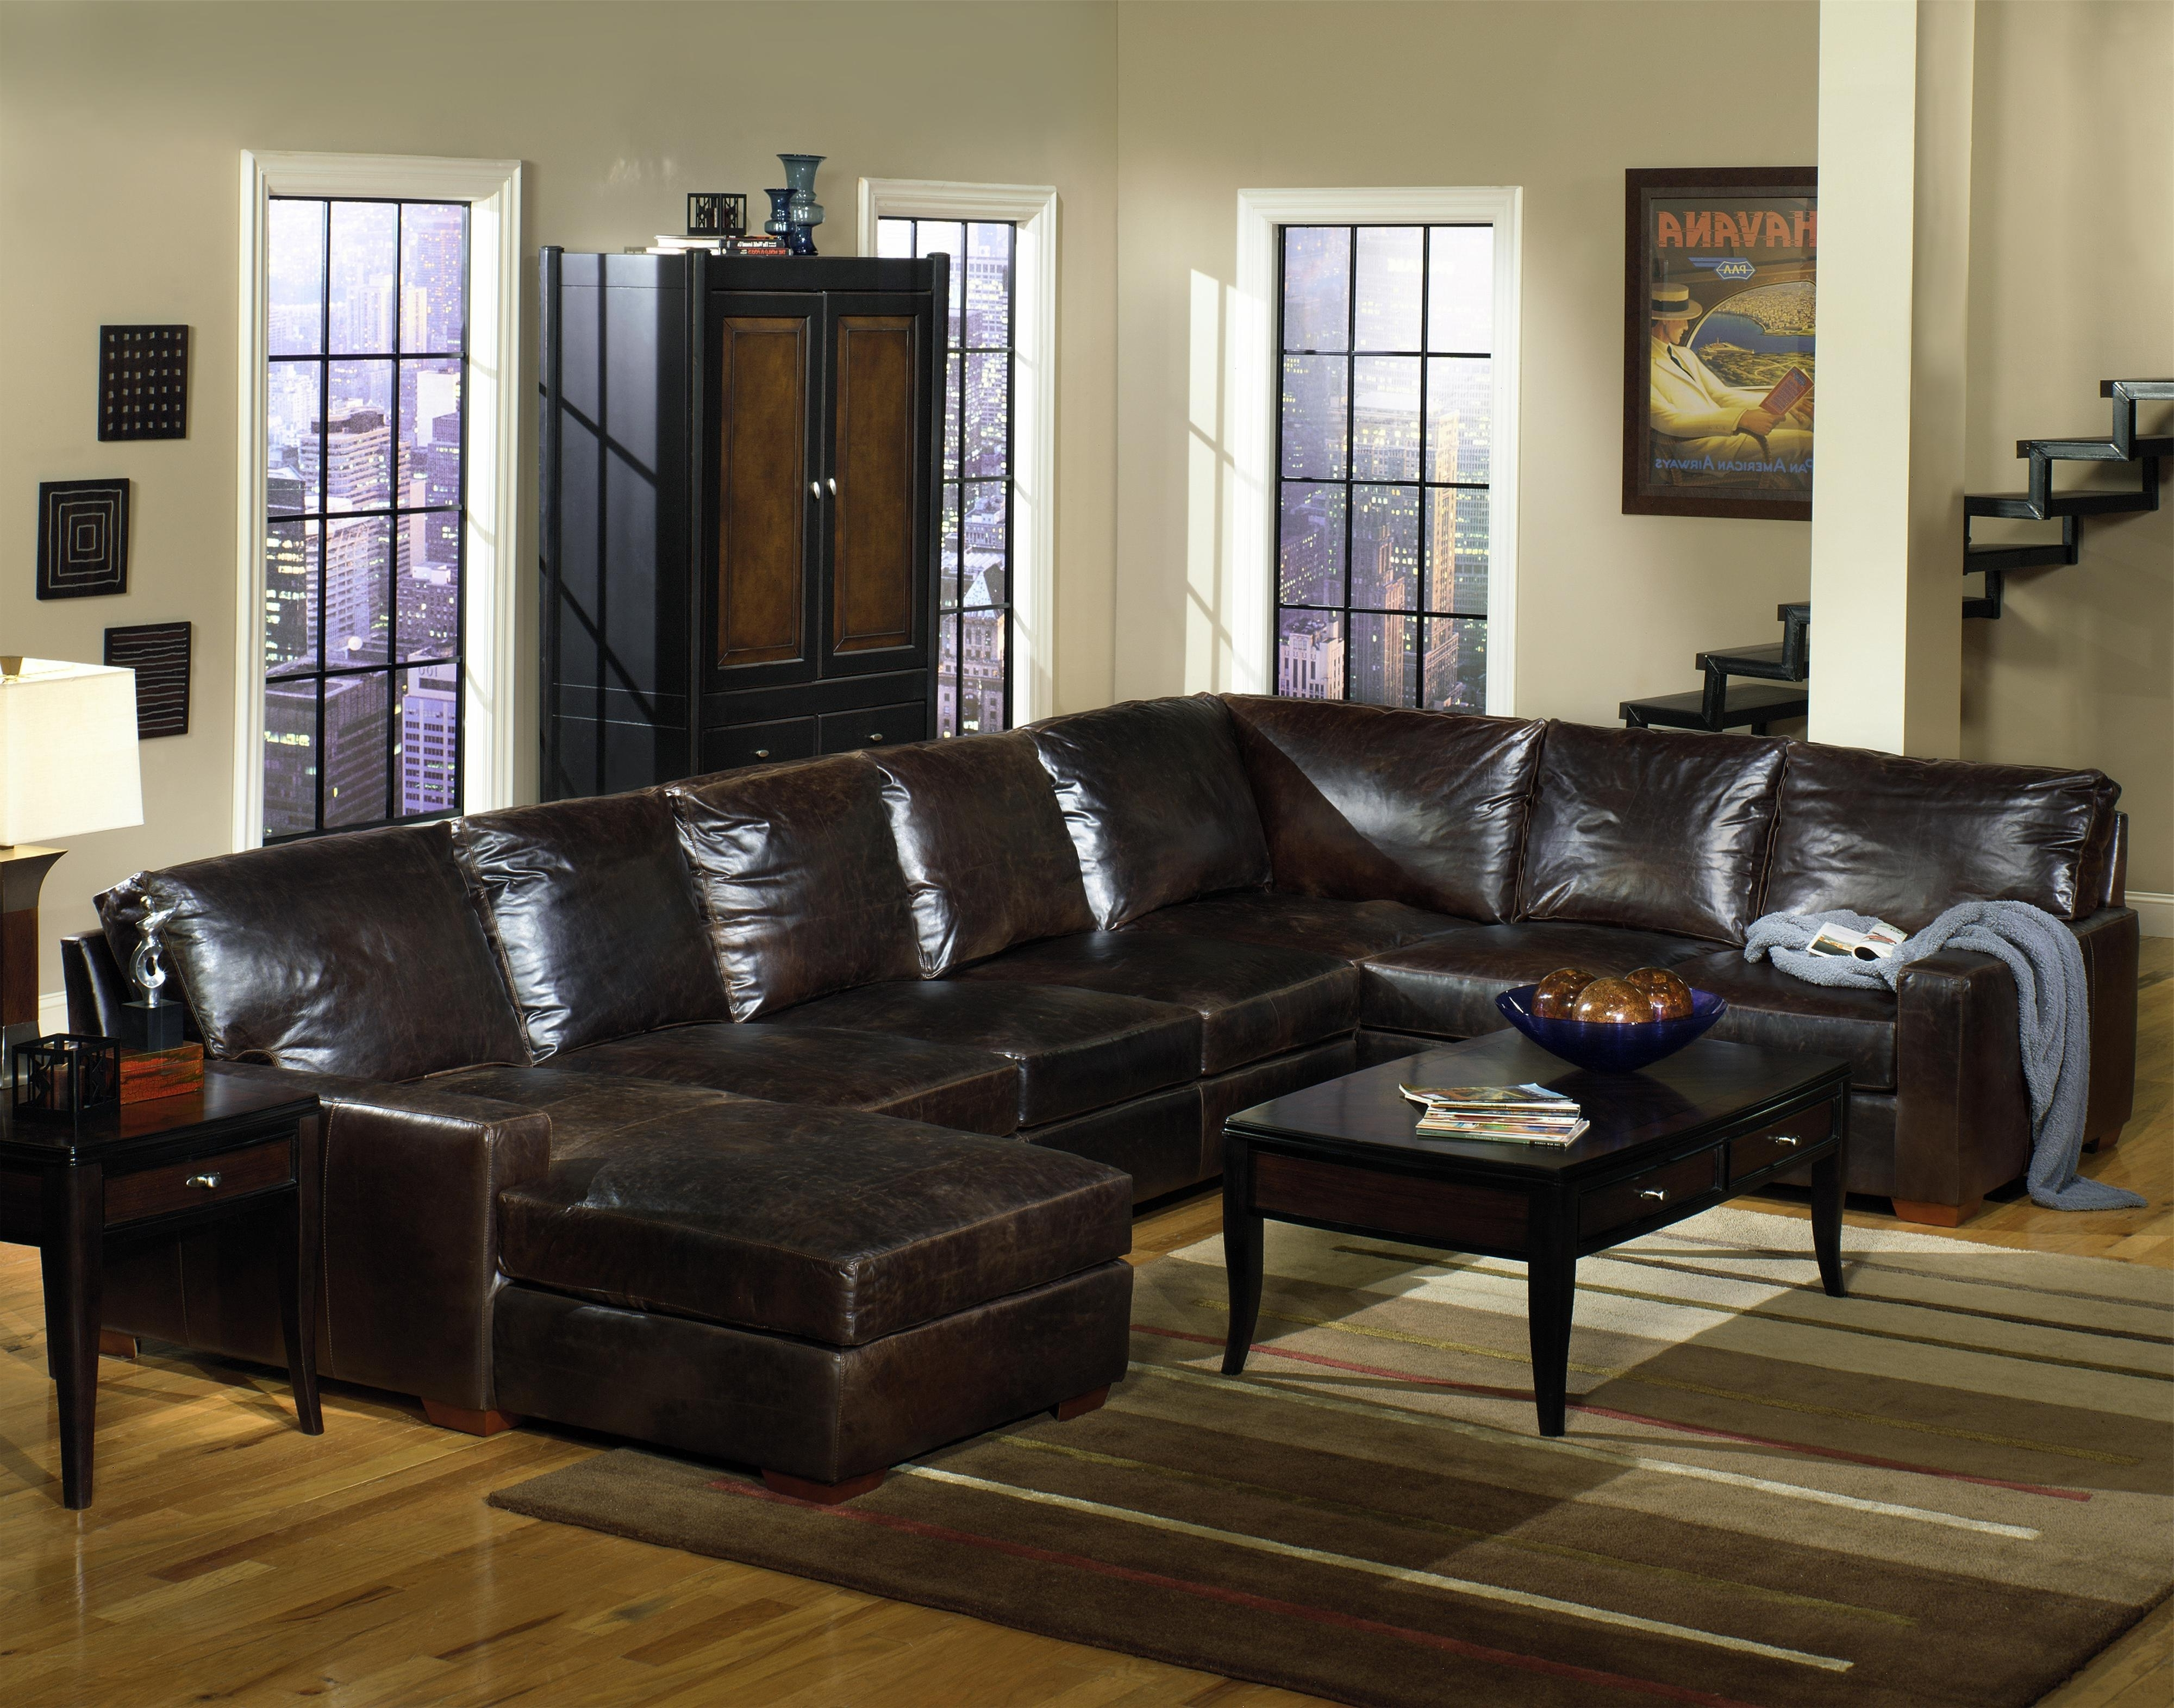 2017 Leather Sectional Sofa With Chaise Lounge Leather Sectional Sofas Regarding Leather Sectionals With Chaise Lounge (View 10 of 15)